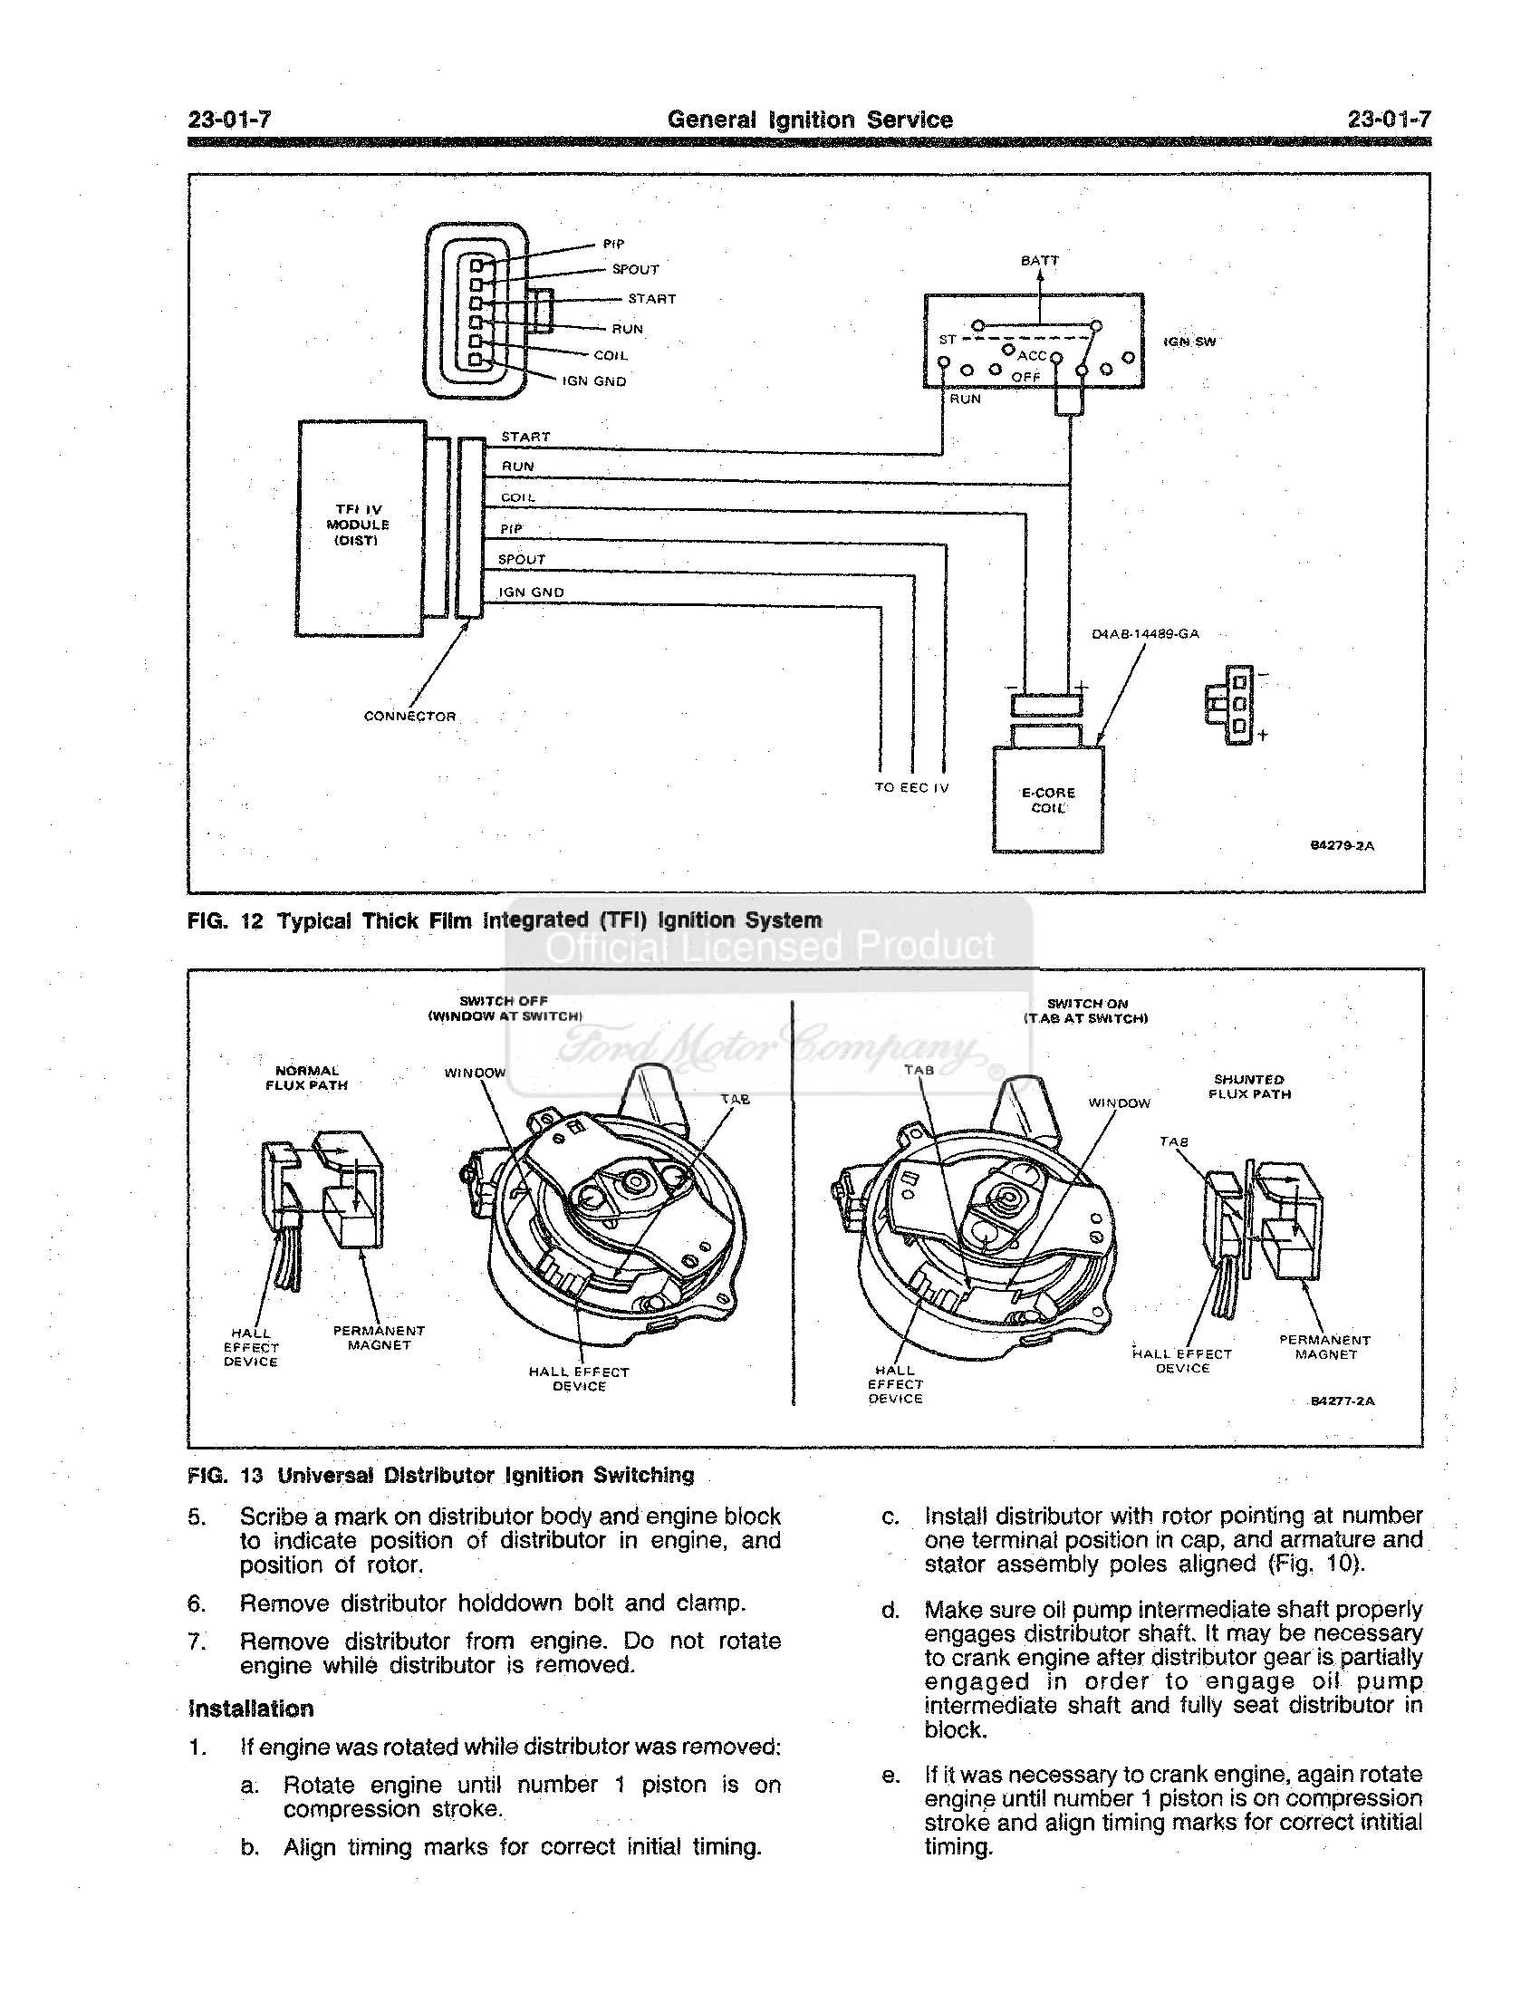 wiring advice please 1986 F-150 300 six - Ford Truck ...